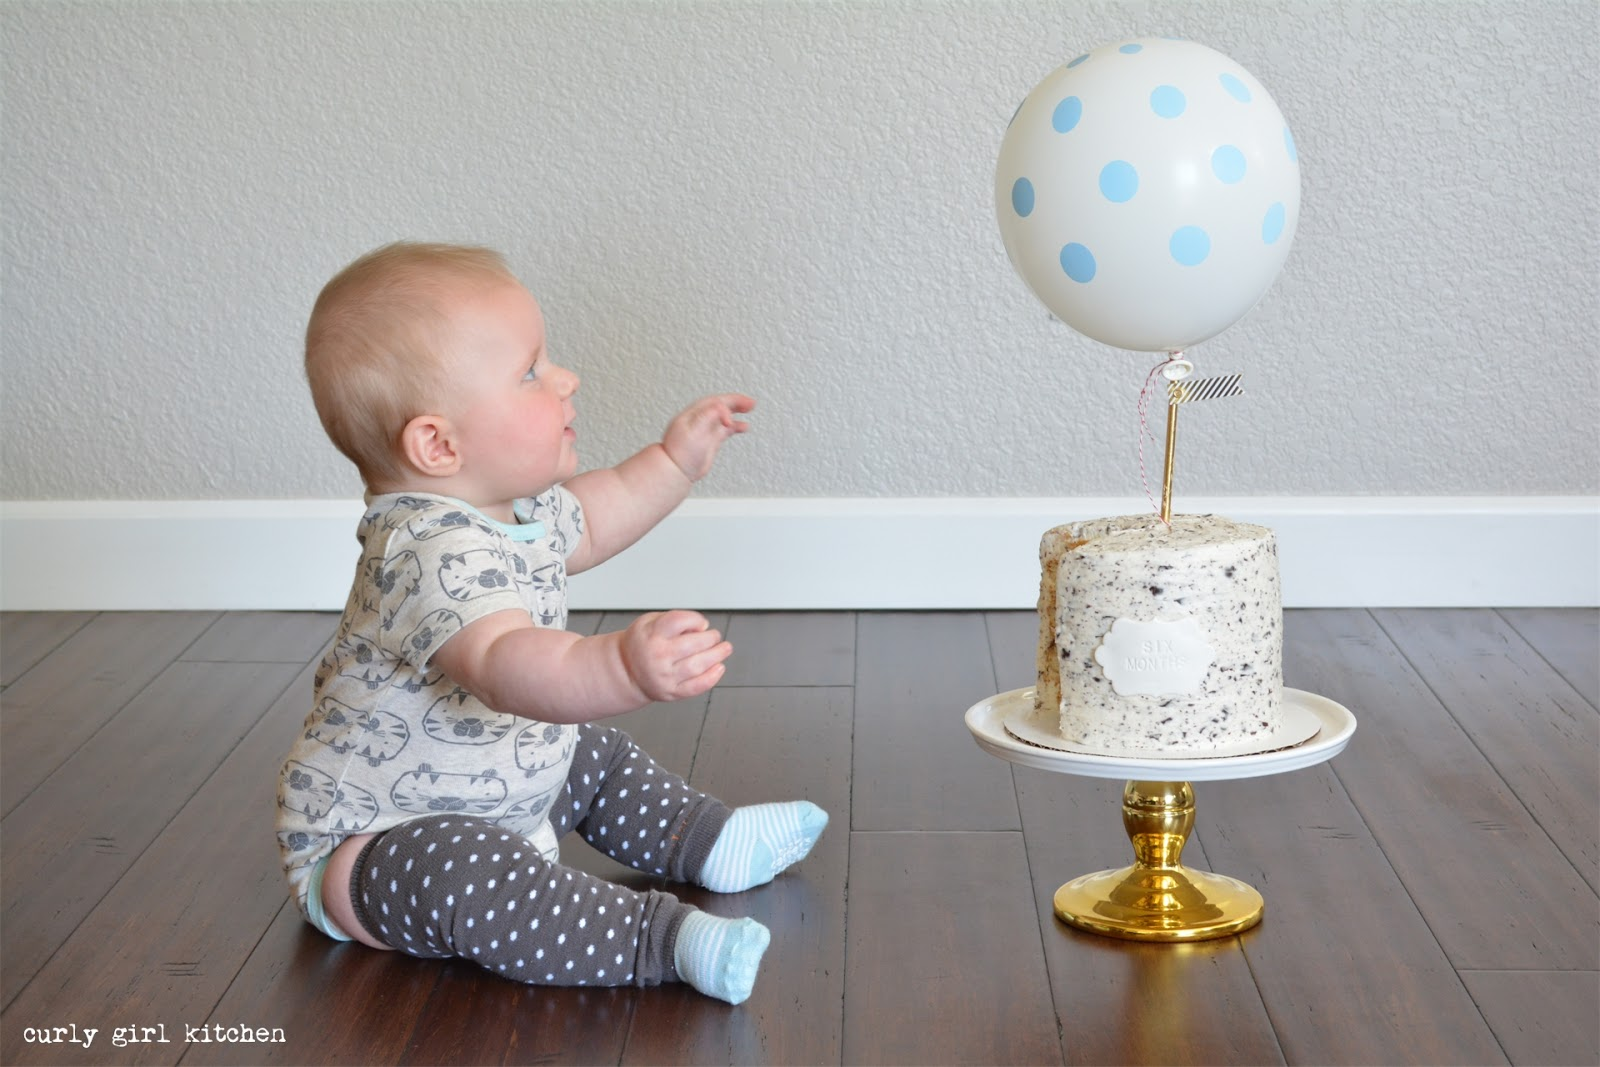 A Half Birthday Six Month Baby Photos Boy Cake Balloon Polkadot